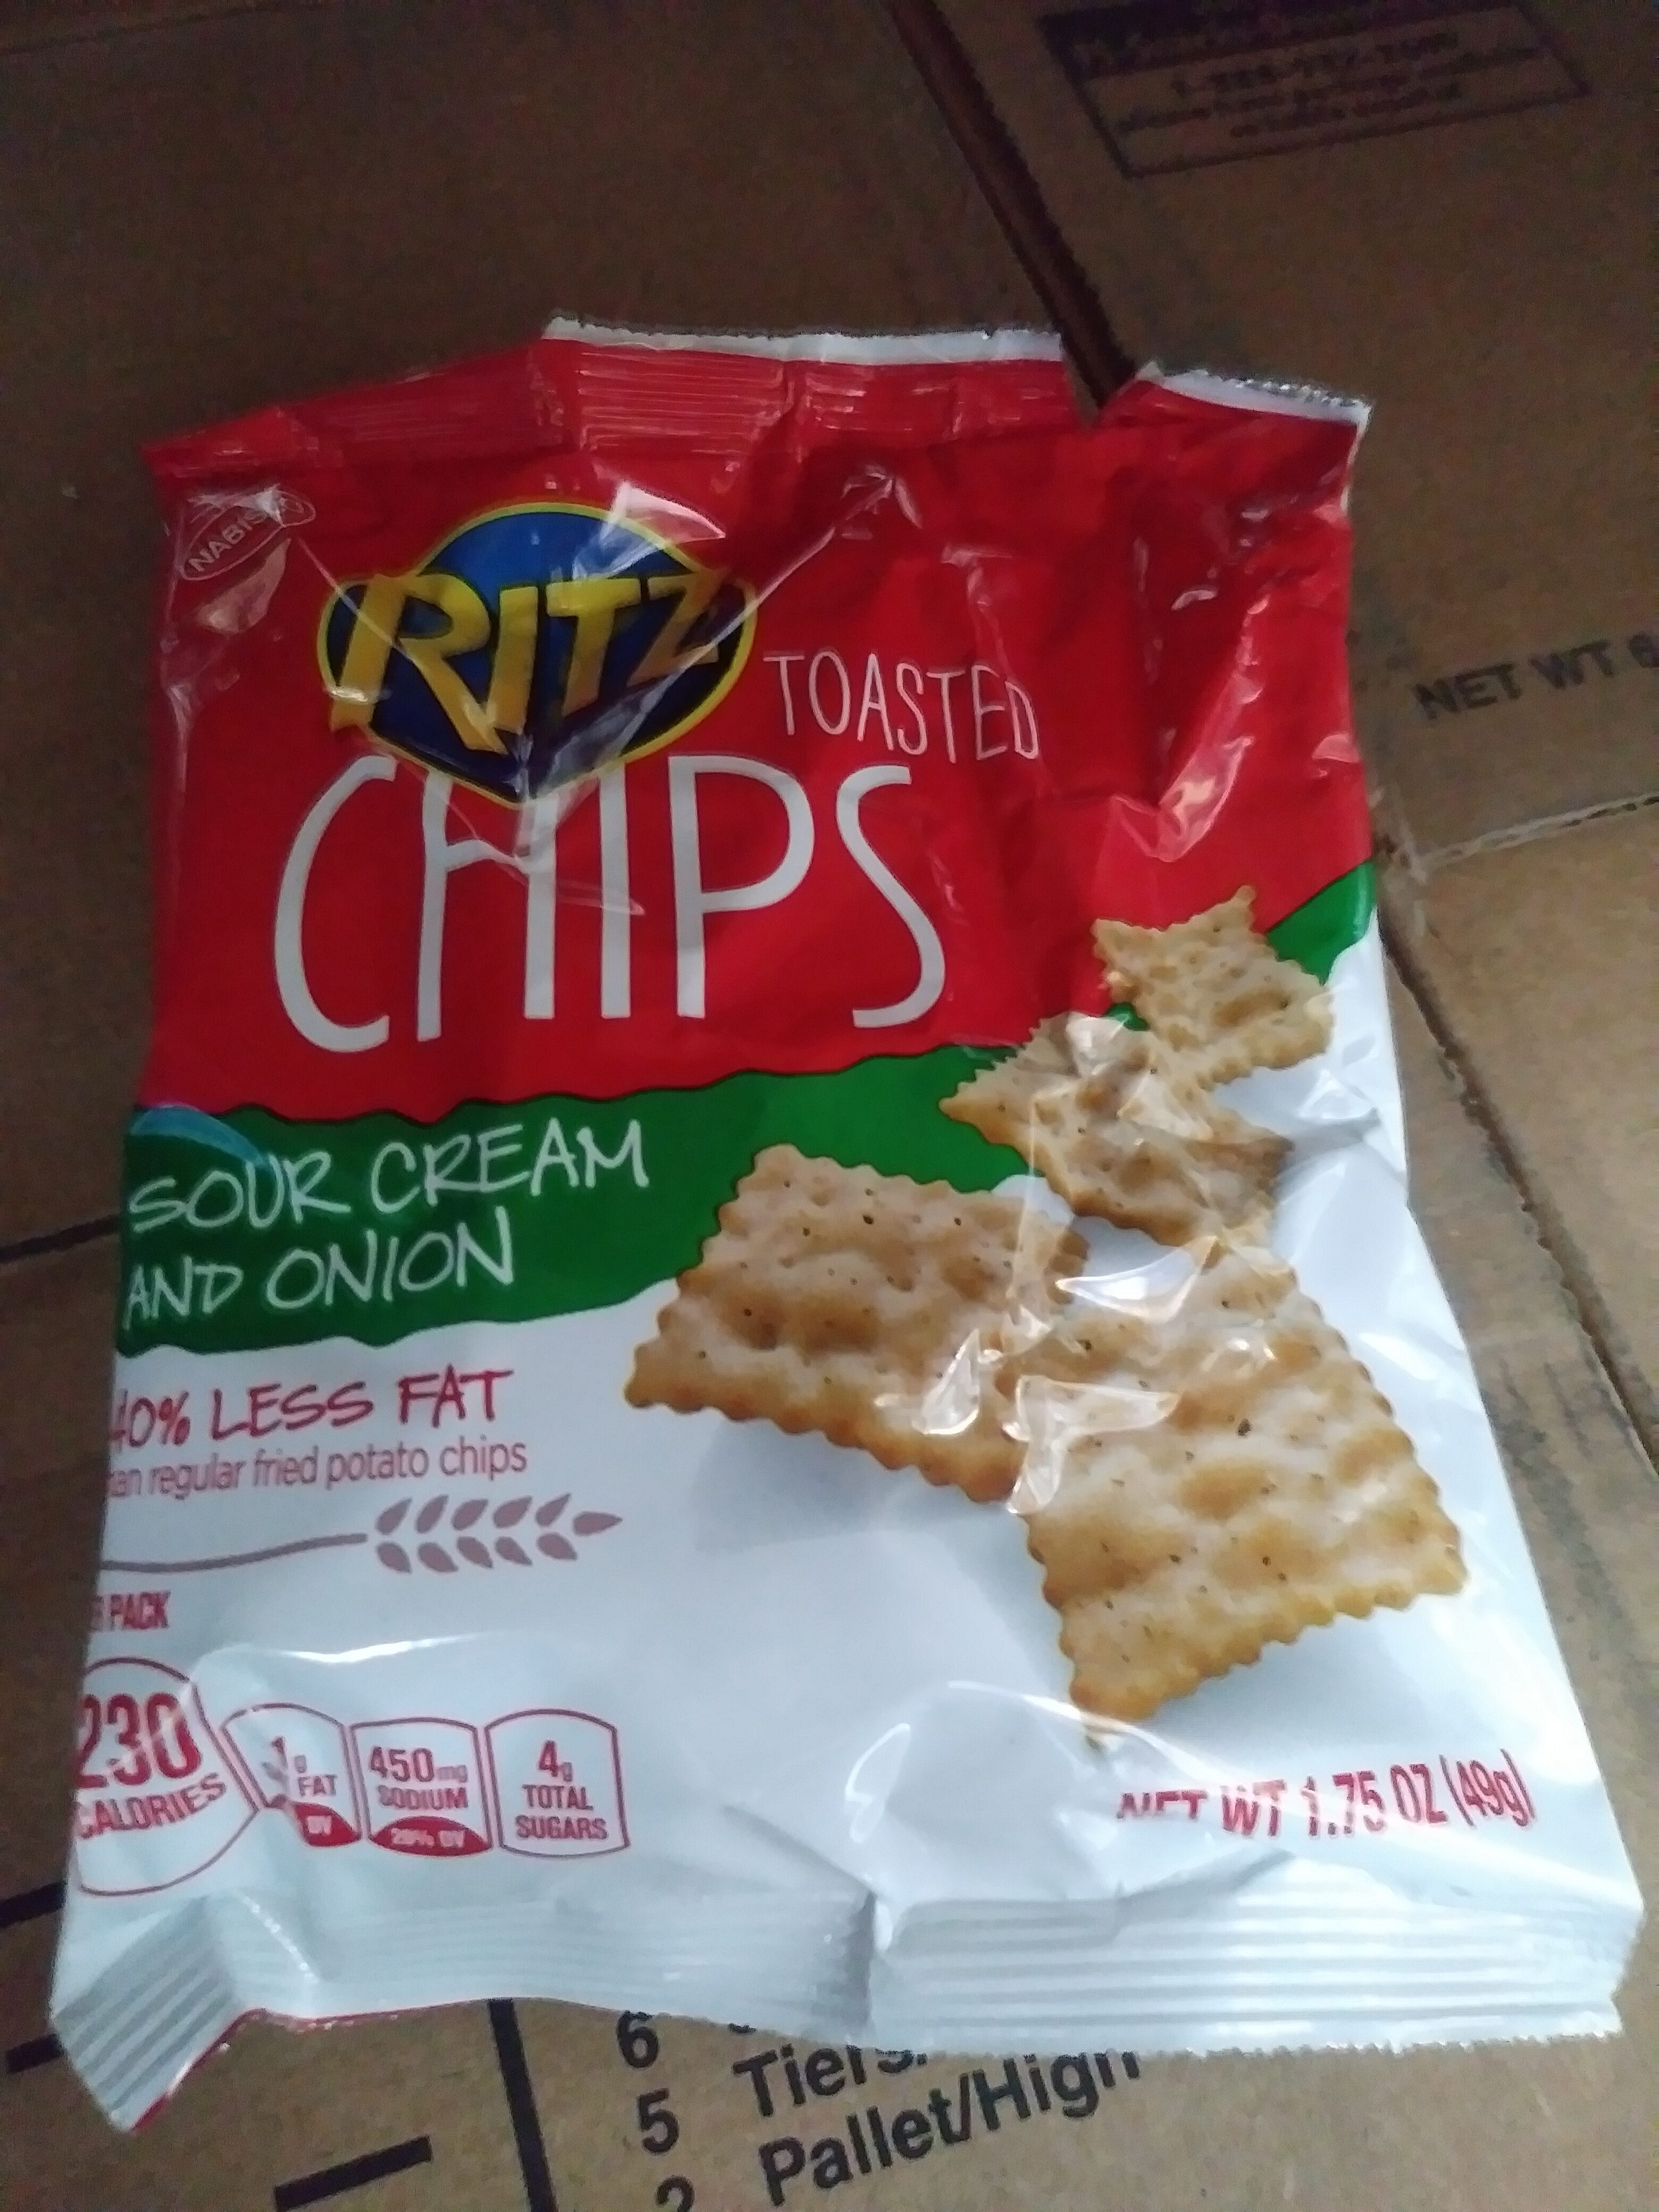 Toasted Chips - Sour Cream and Onion Flavor - Product - en